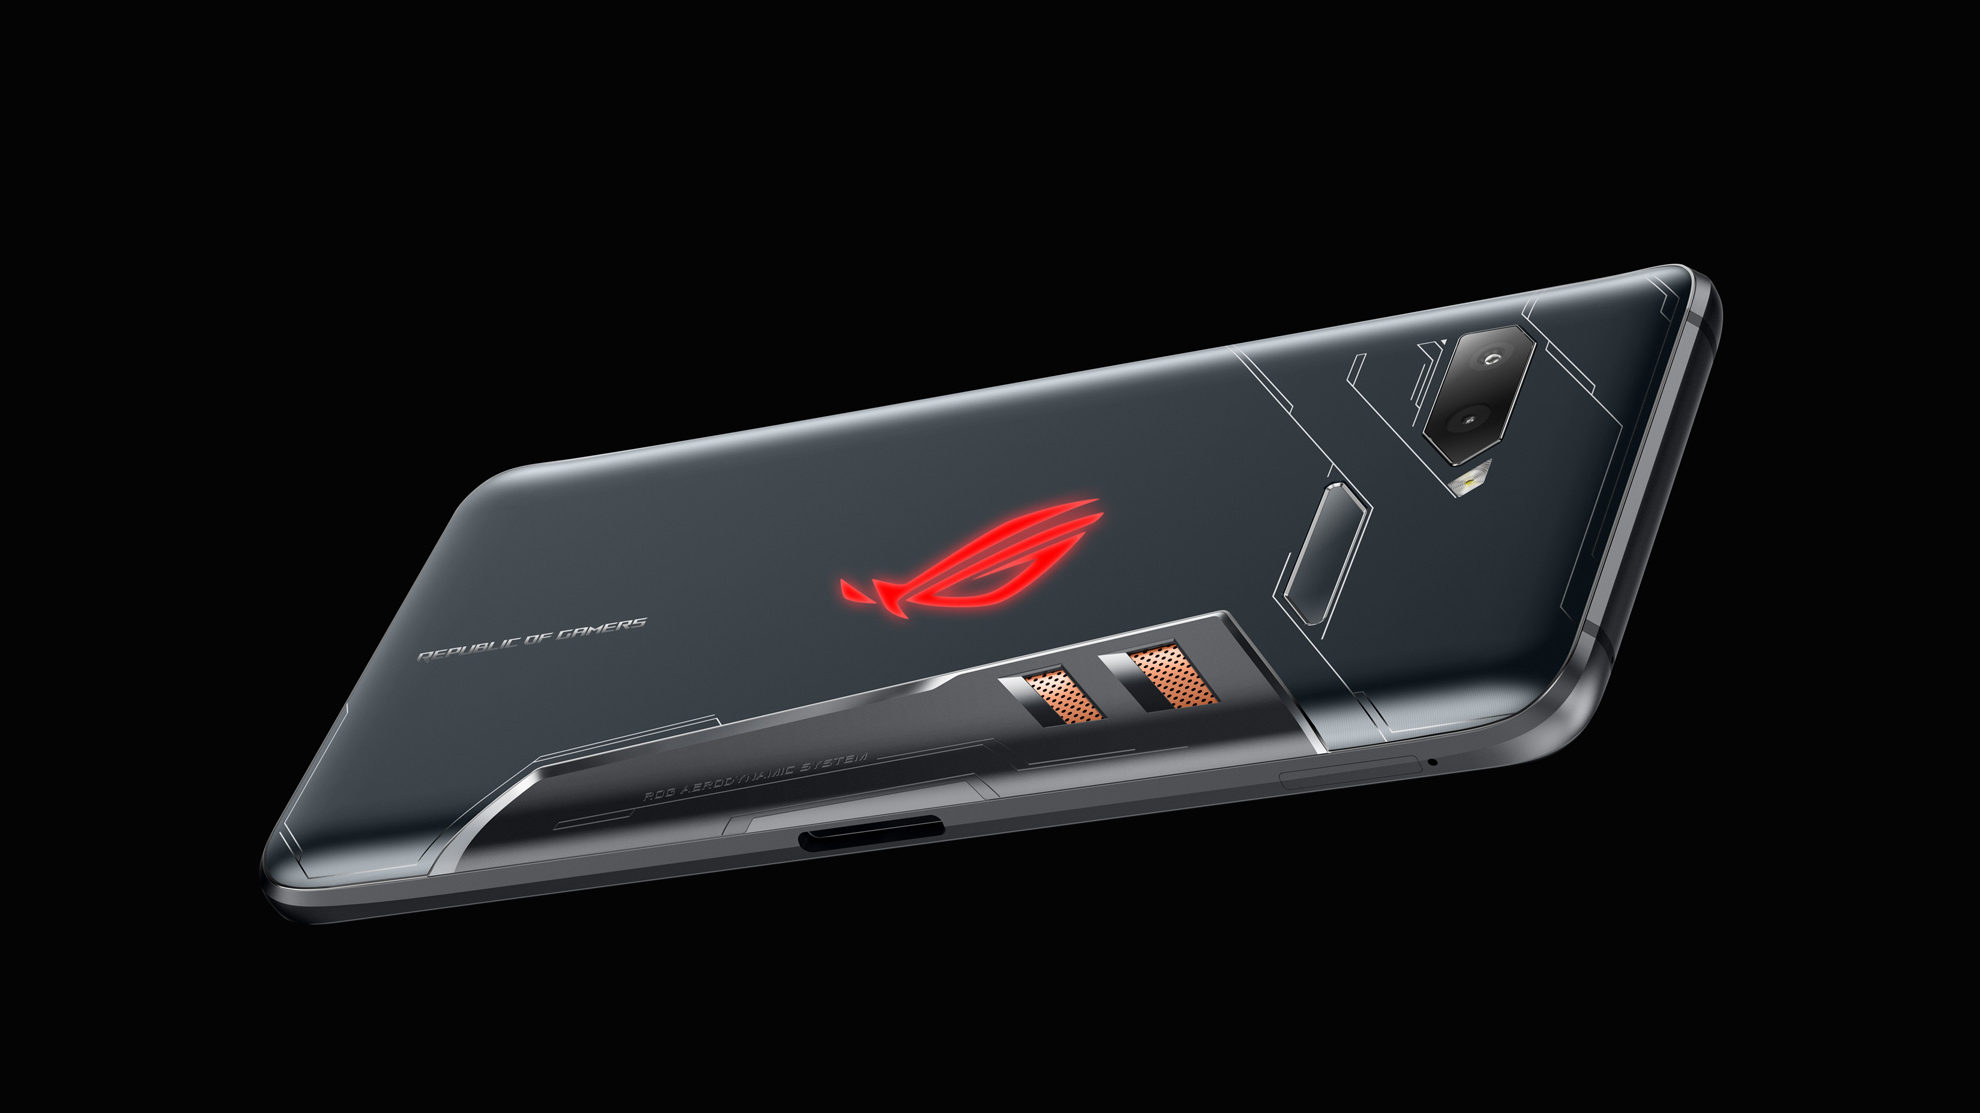 Asus ROG Phone 2 launch date released - The Geek Herald